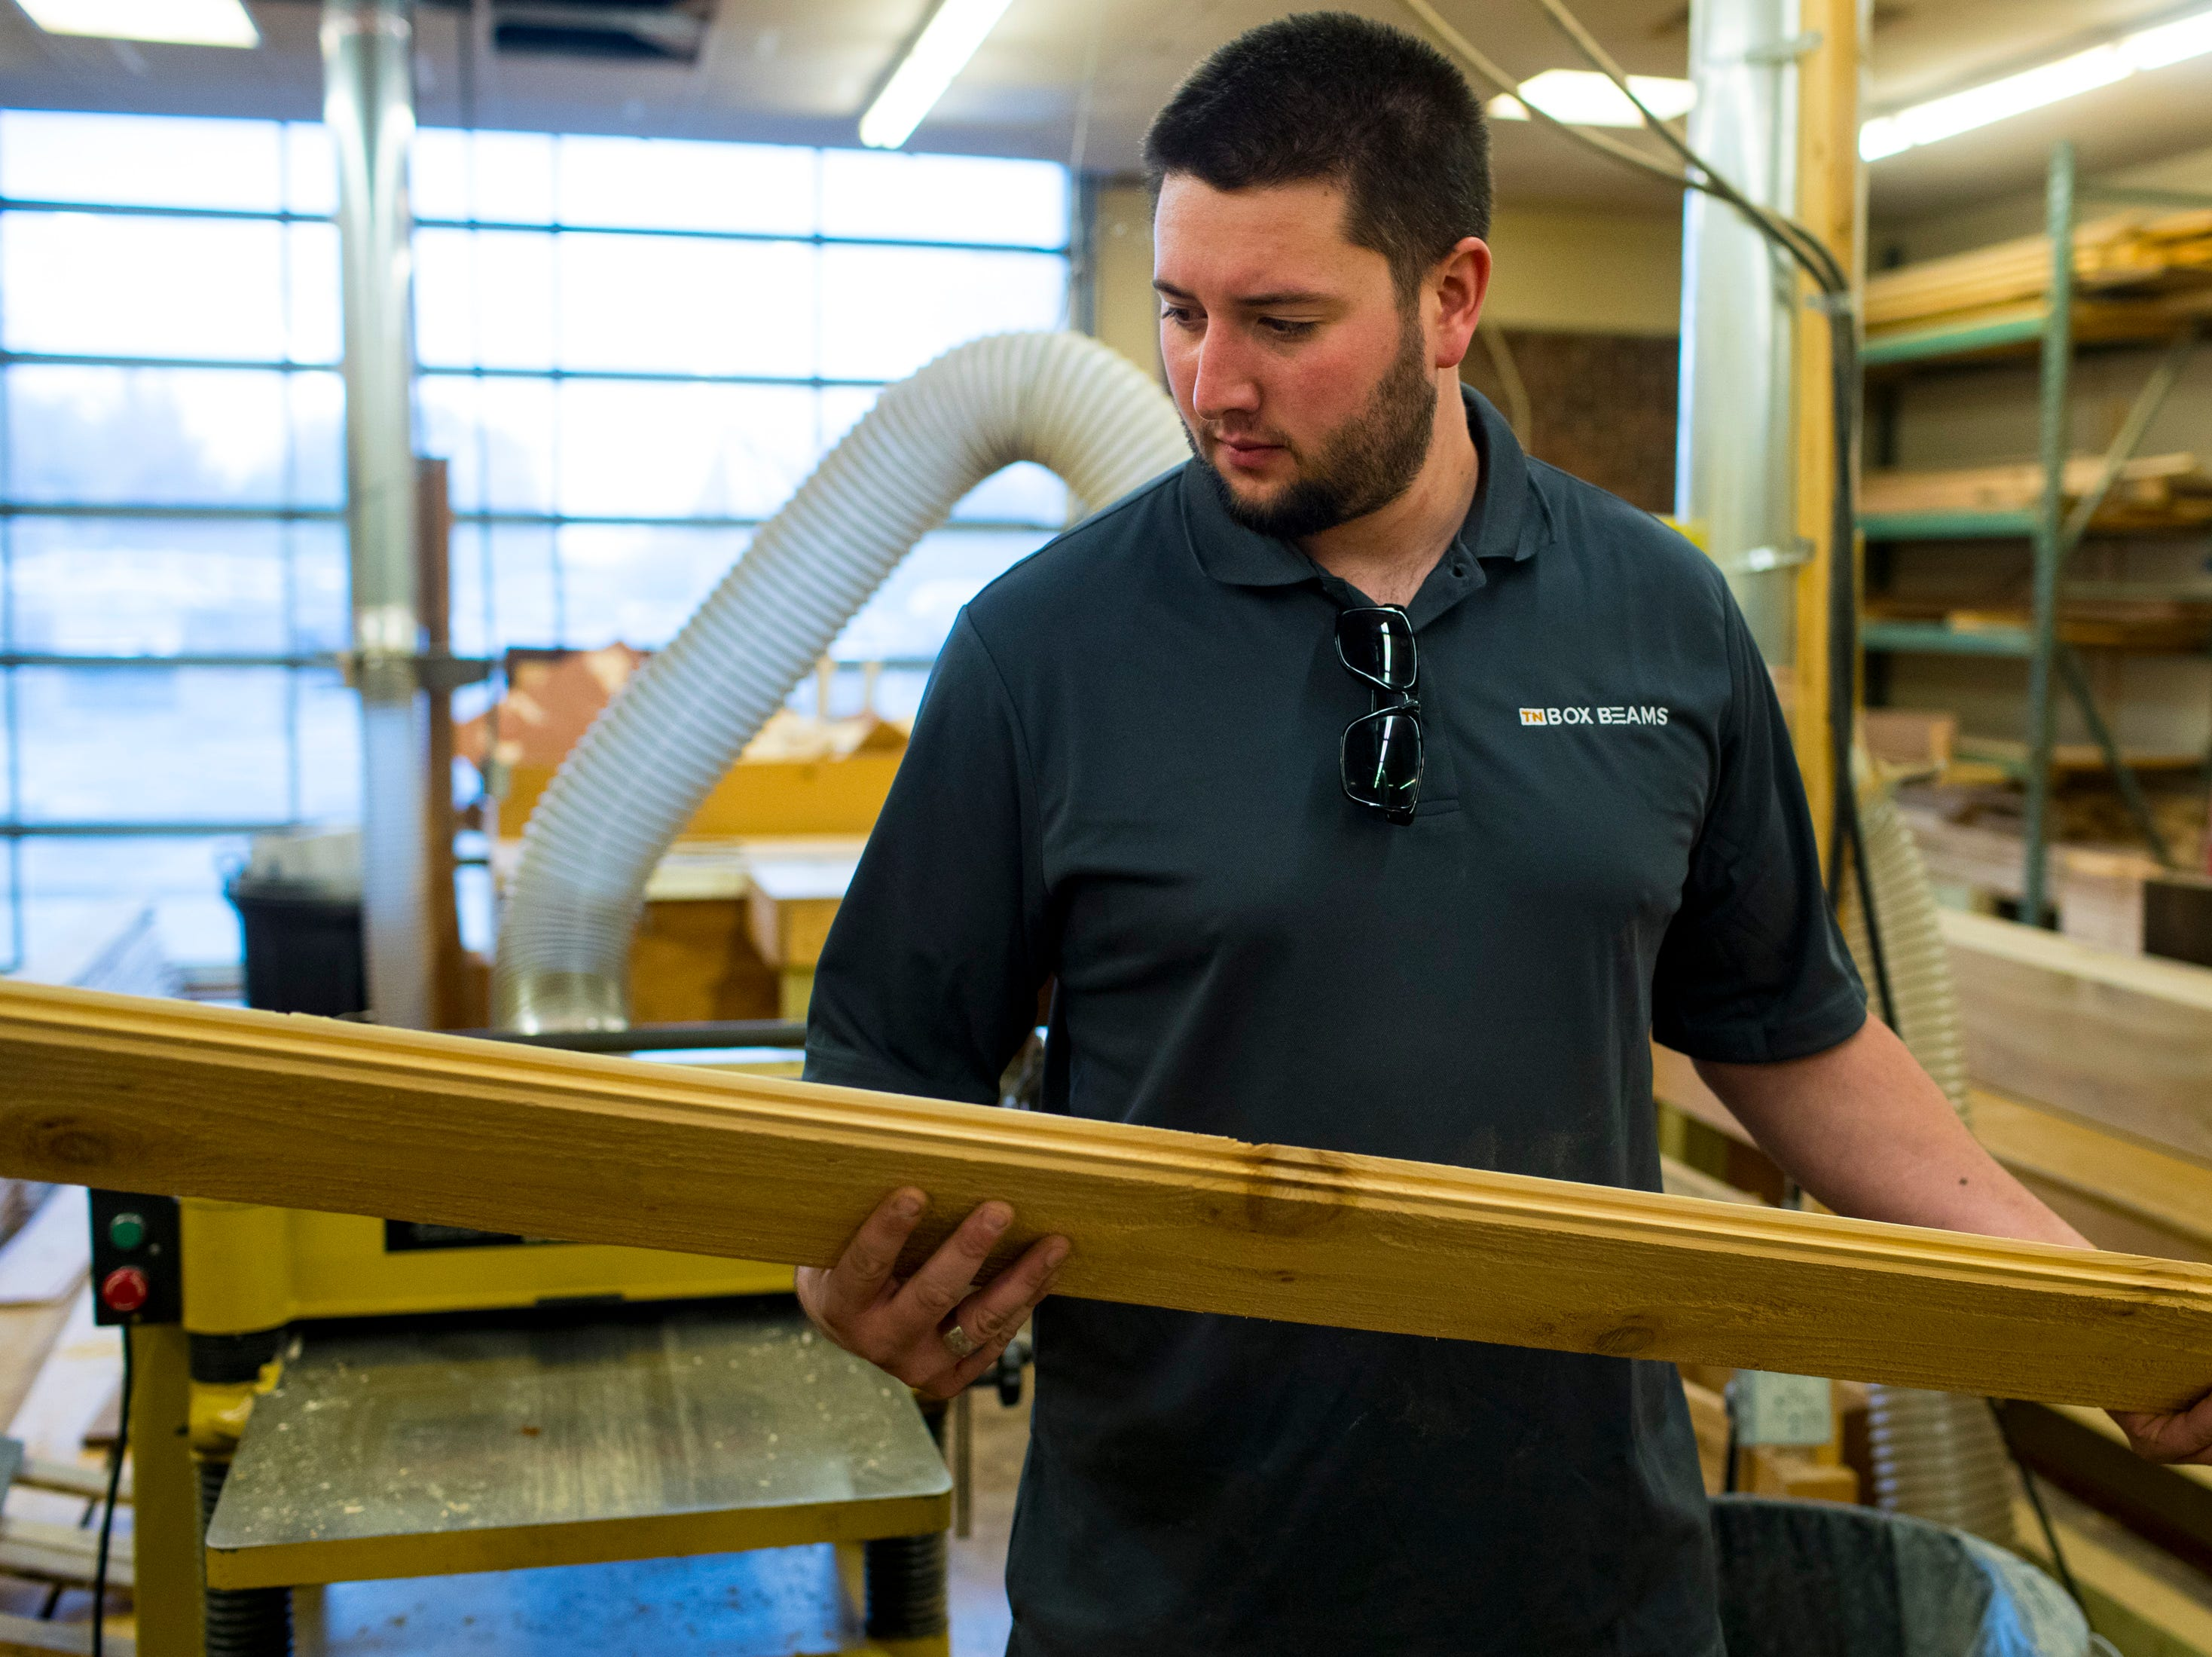 Colin Hemberg looks over a board at TN Box Beams in Franklin on Friday, Nov. 9, 2018. TN Box Beams will be featured on the HGTV show Property Brothers Buying + Selling on Nov. 14.